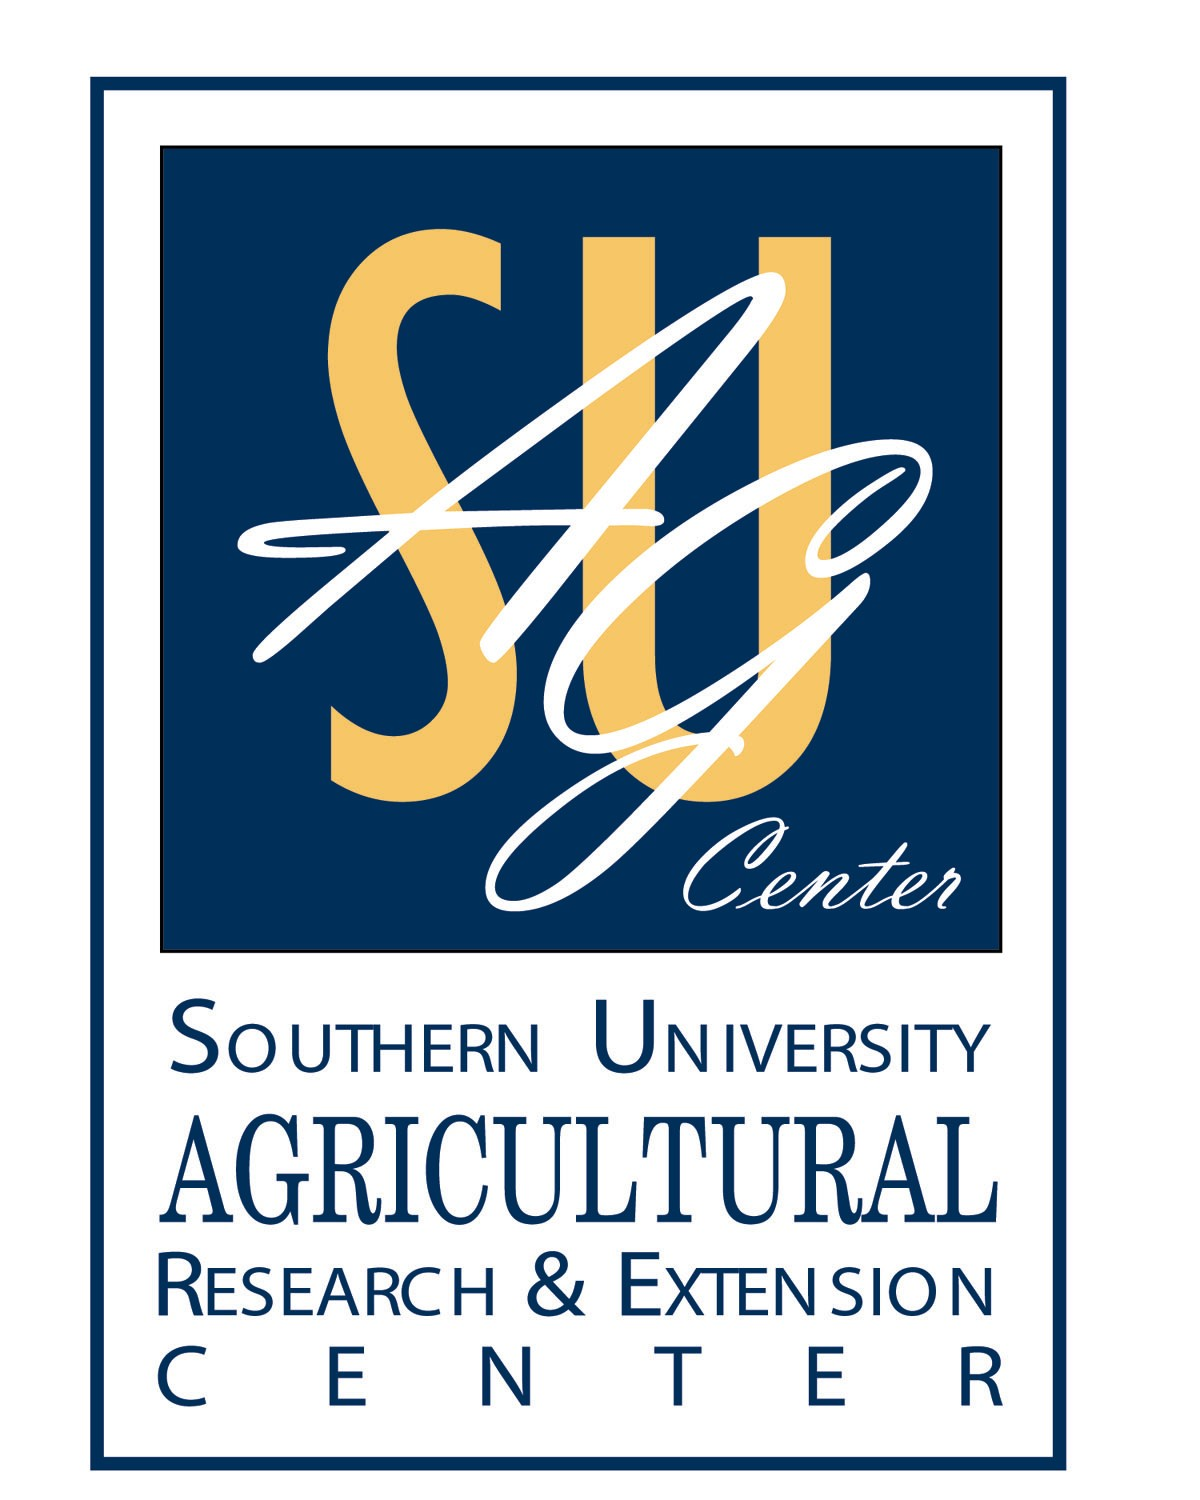 southern agricultural center logo